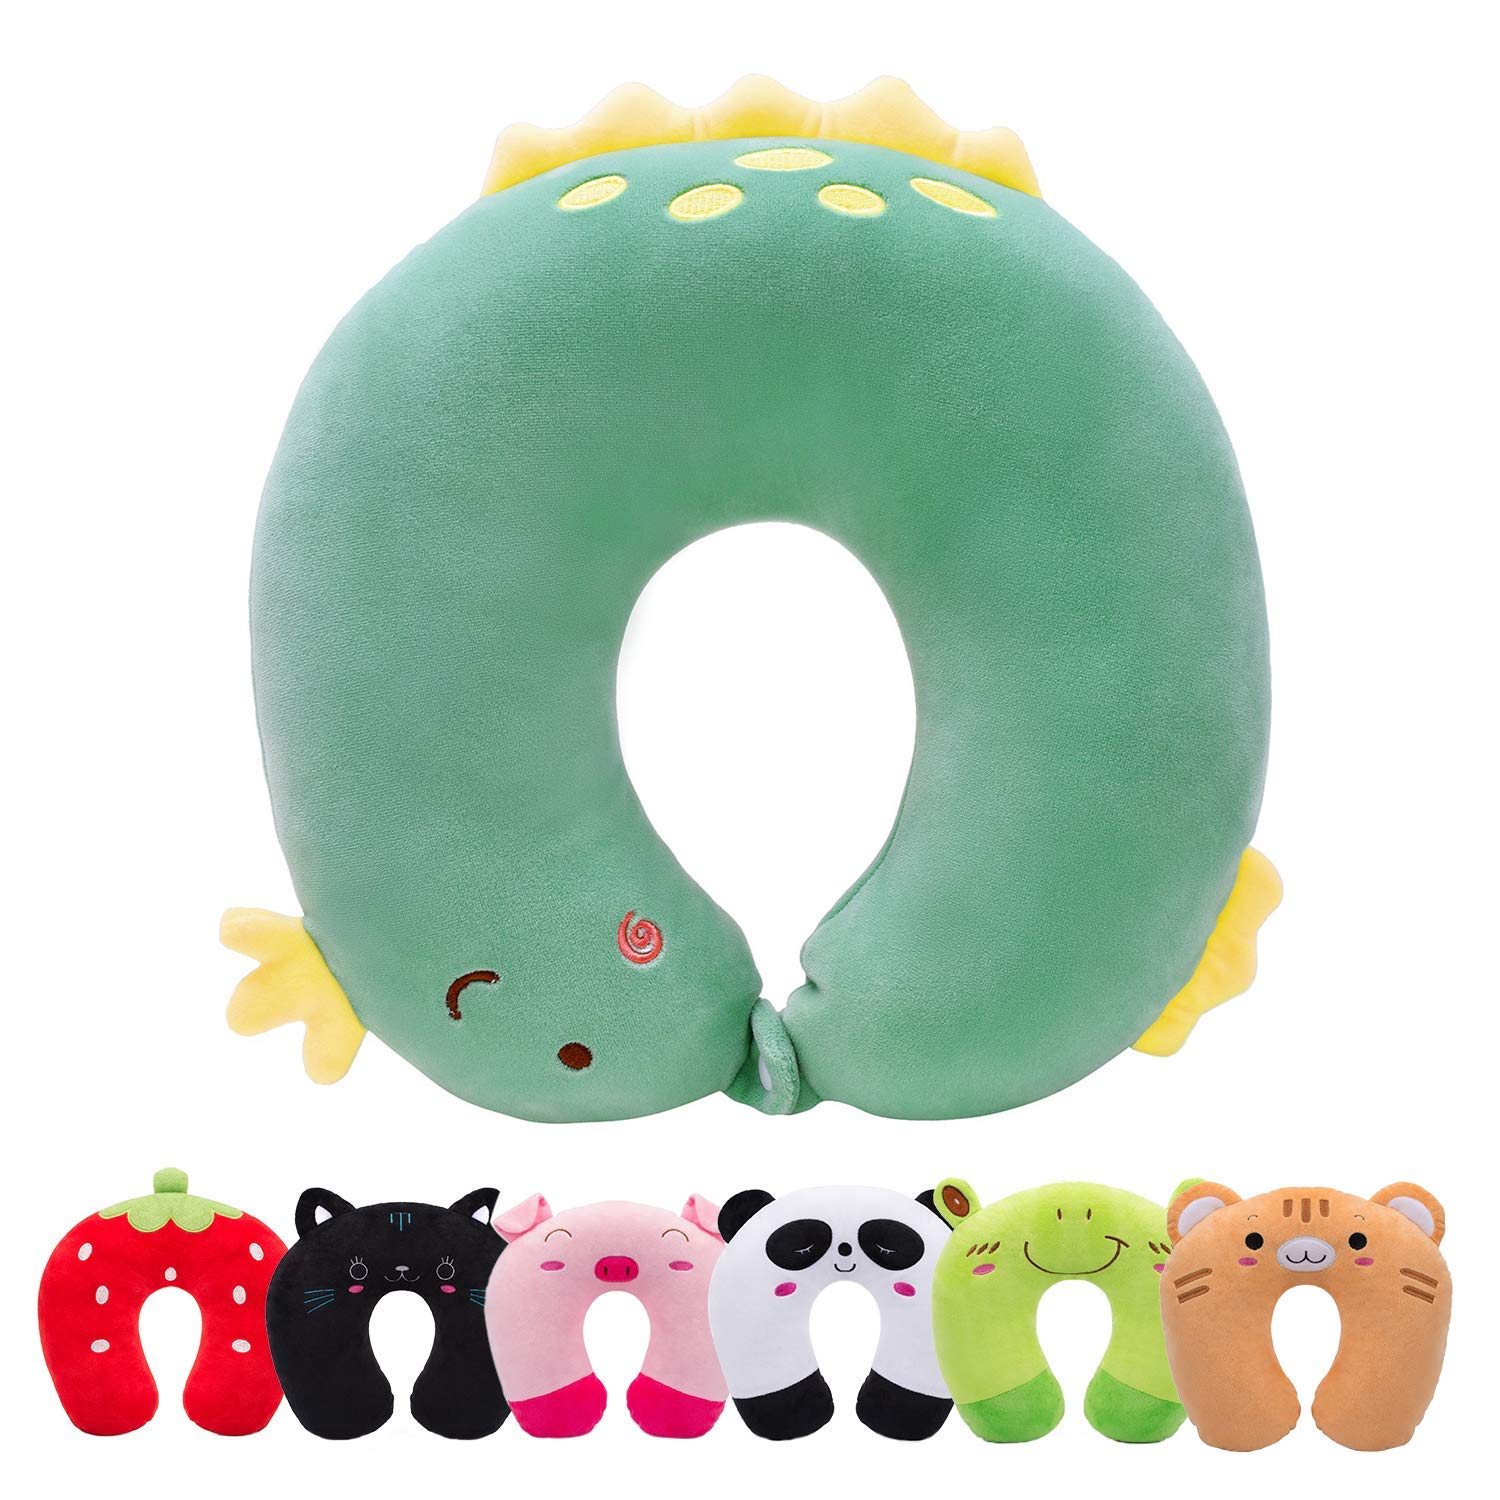 H HOMEWINS Travel Pillow for Kids Toddlers - Soft Neck Head Chin Support Pillow, Cute Animal in Any Sitting Position for Airplane, Car, Train, Machine Washable, Children Gifts (Green Dinosaur)